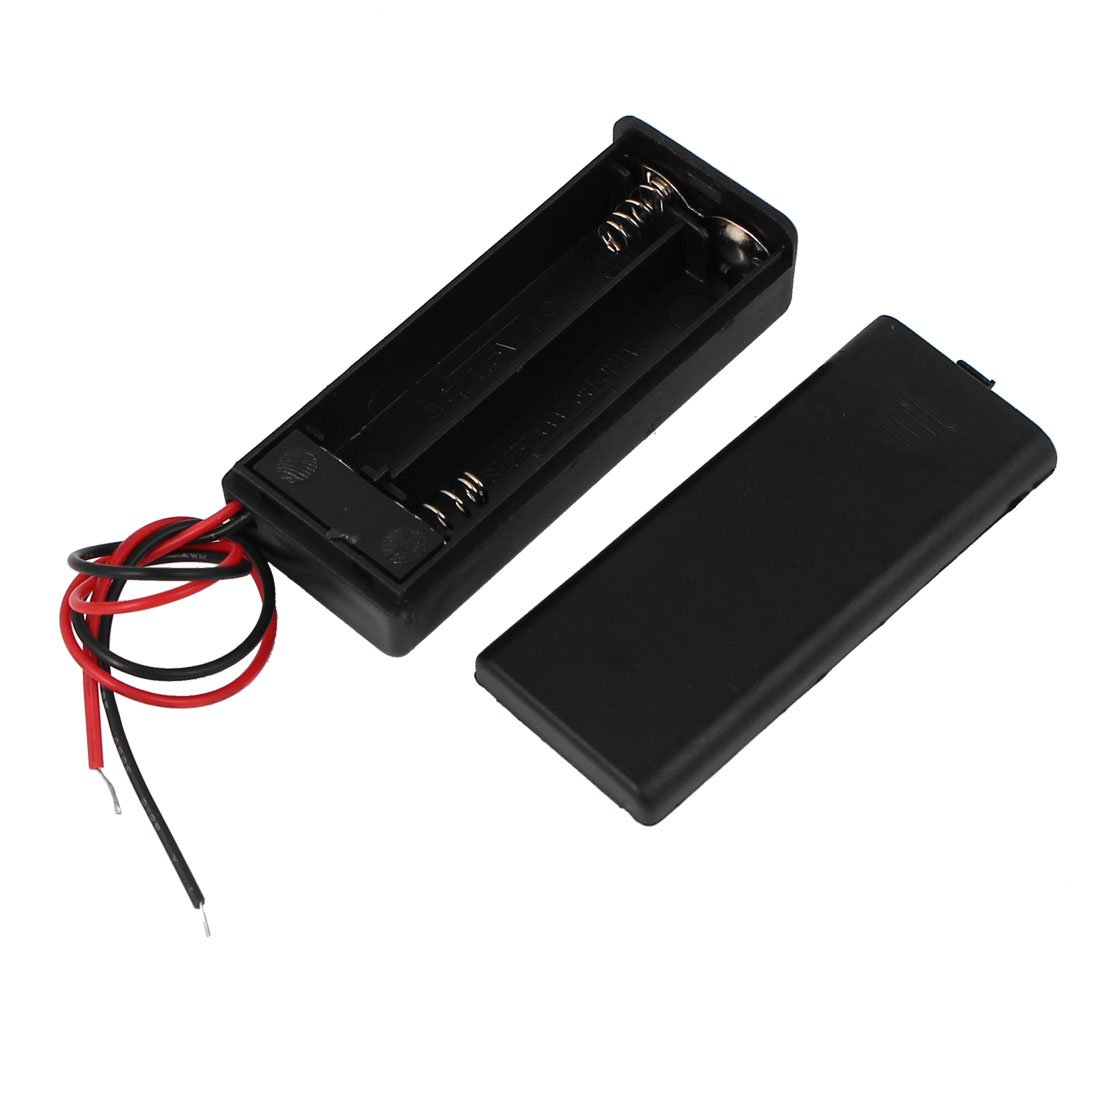 3V Output 2 x AA Battery Holder Black ABS Enclosed Box On-Off Switch 160mm Leads